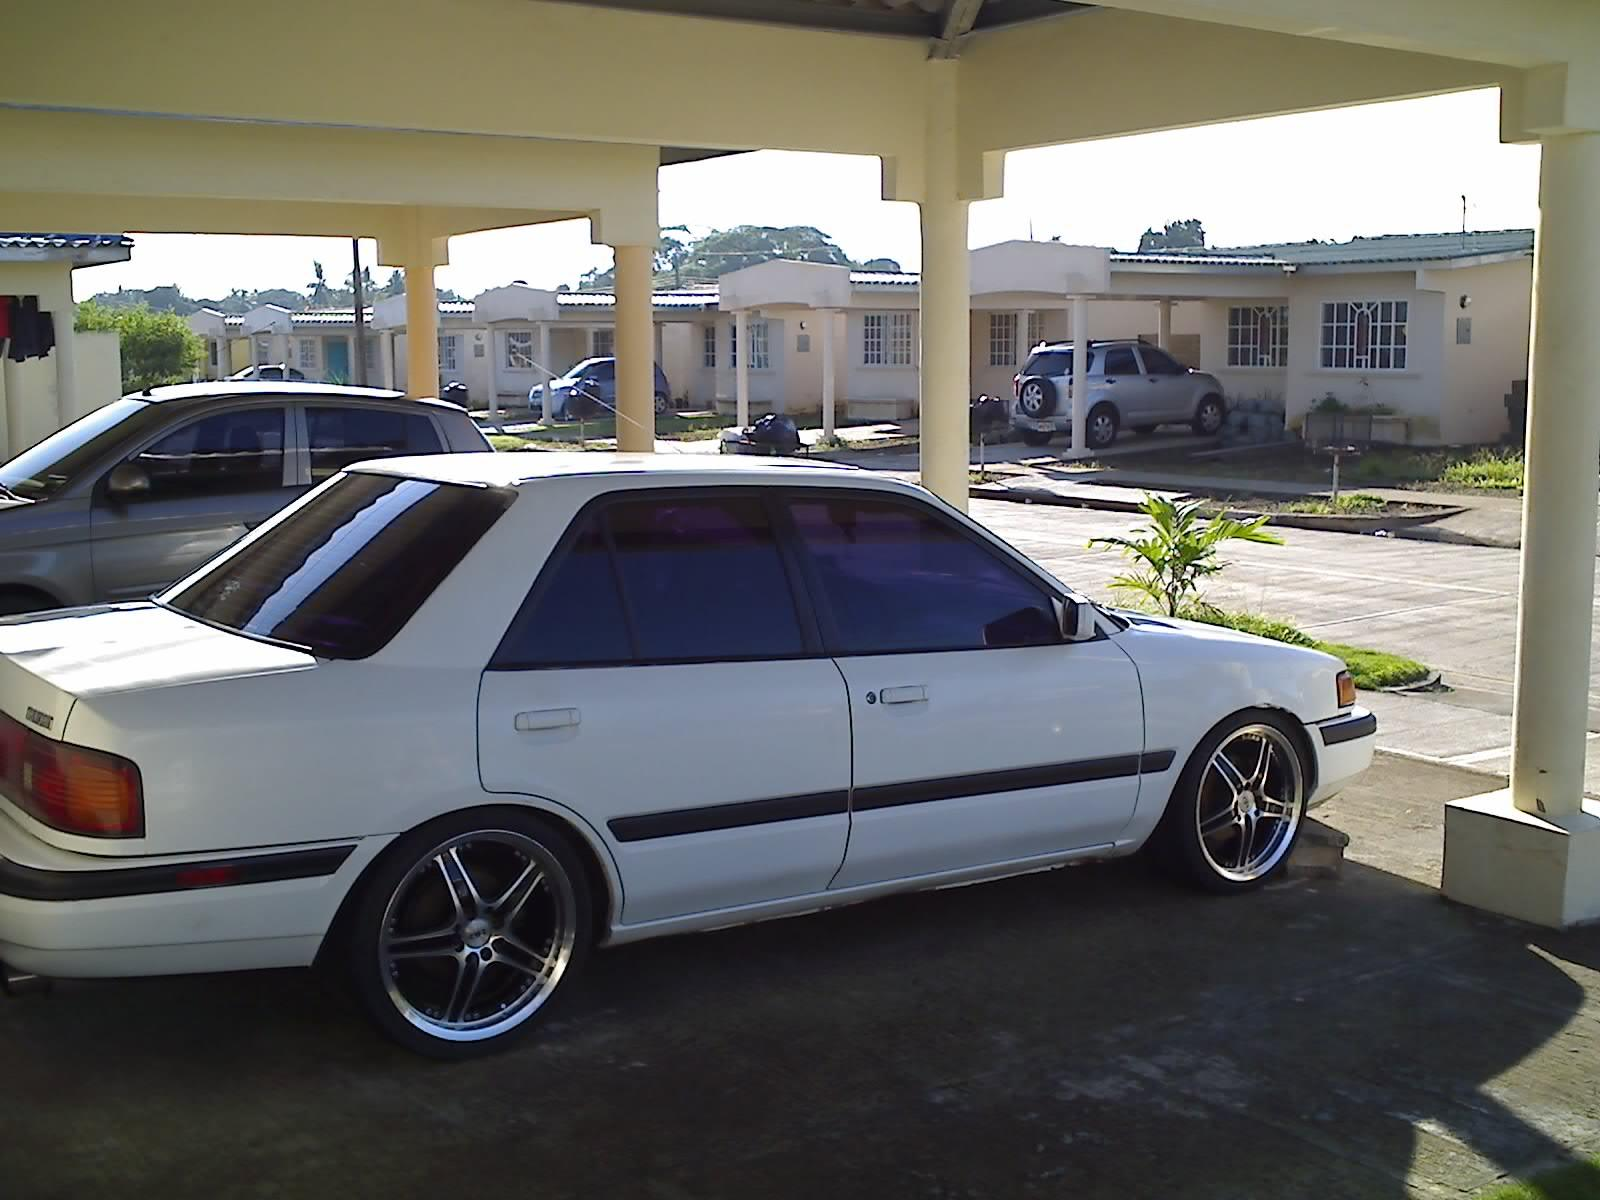 1992 mazda protege information and photos neo drive neo drive